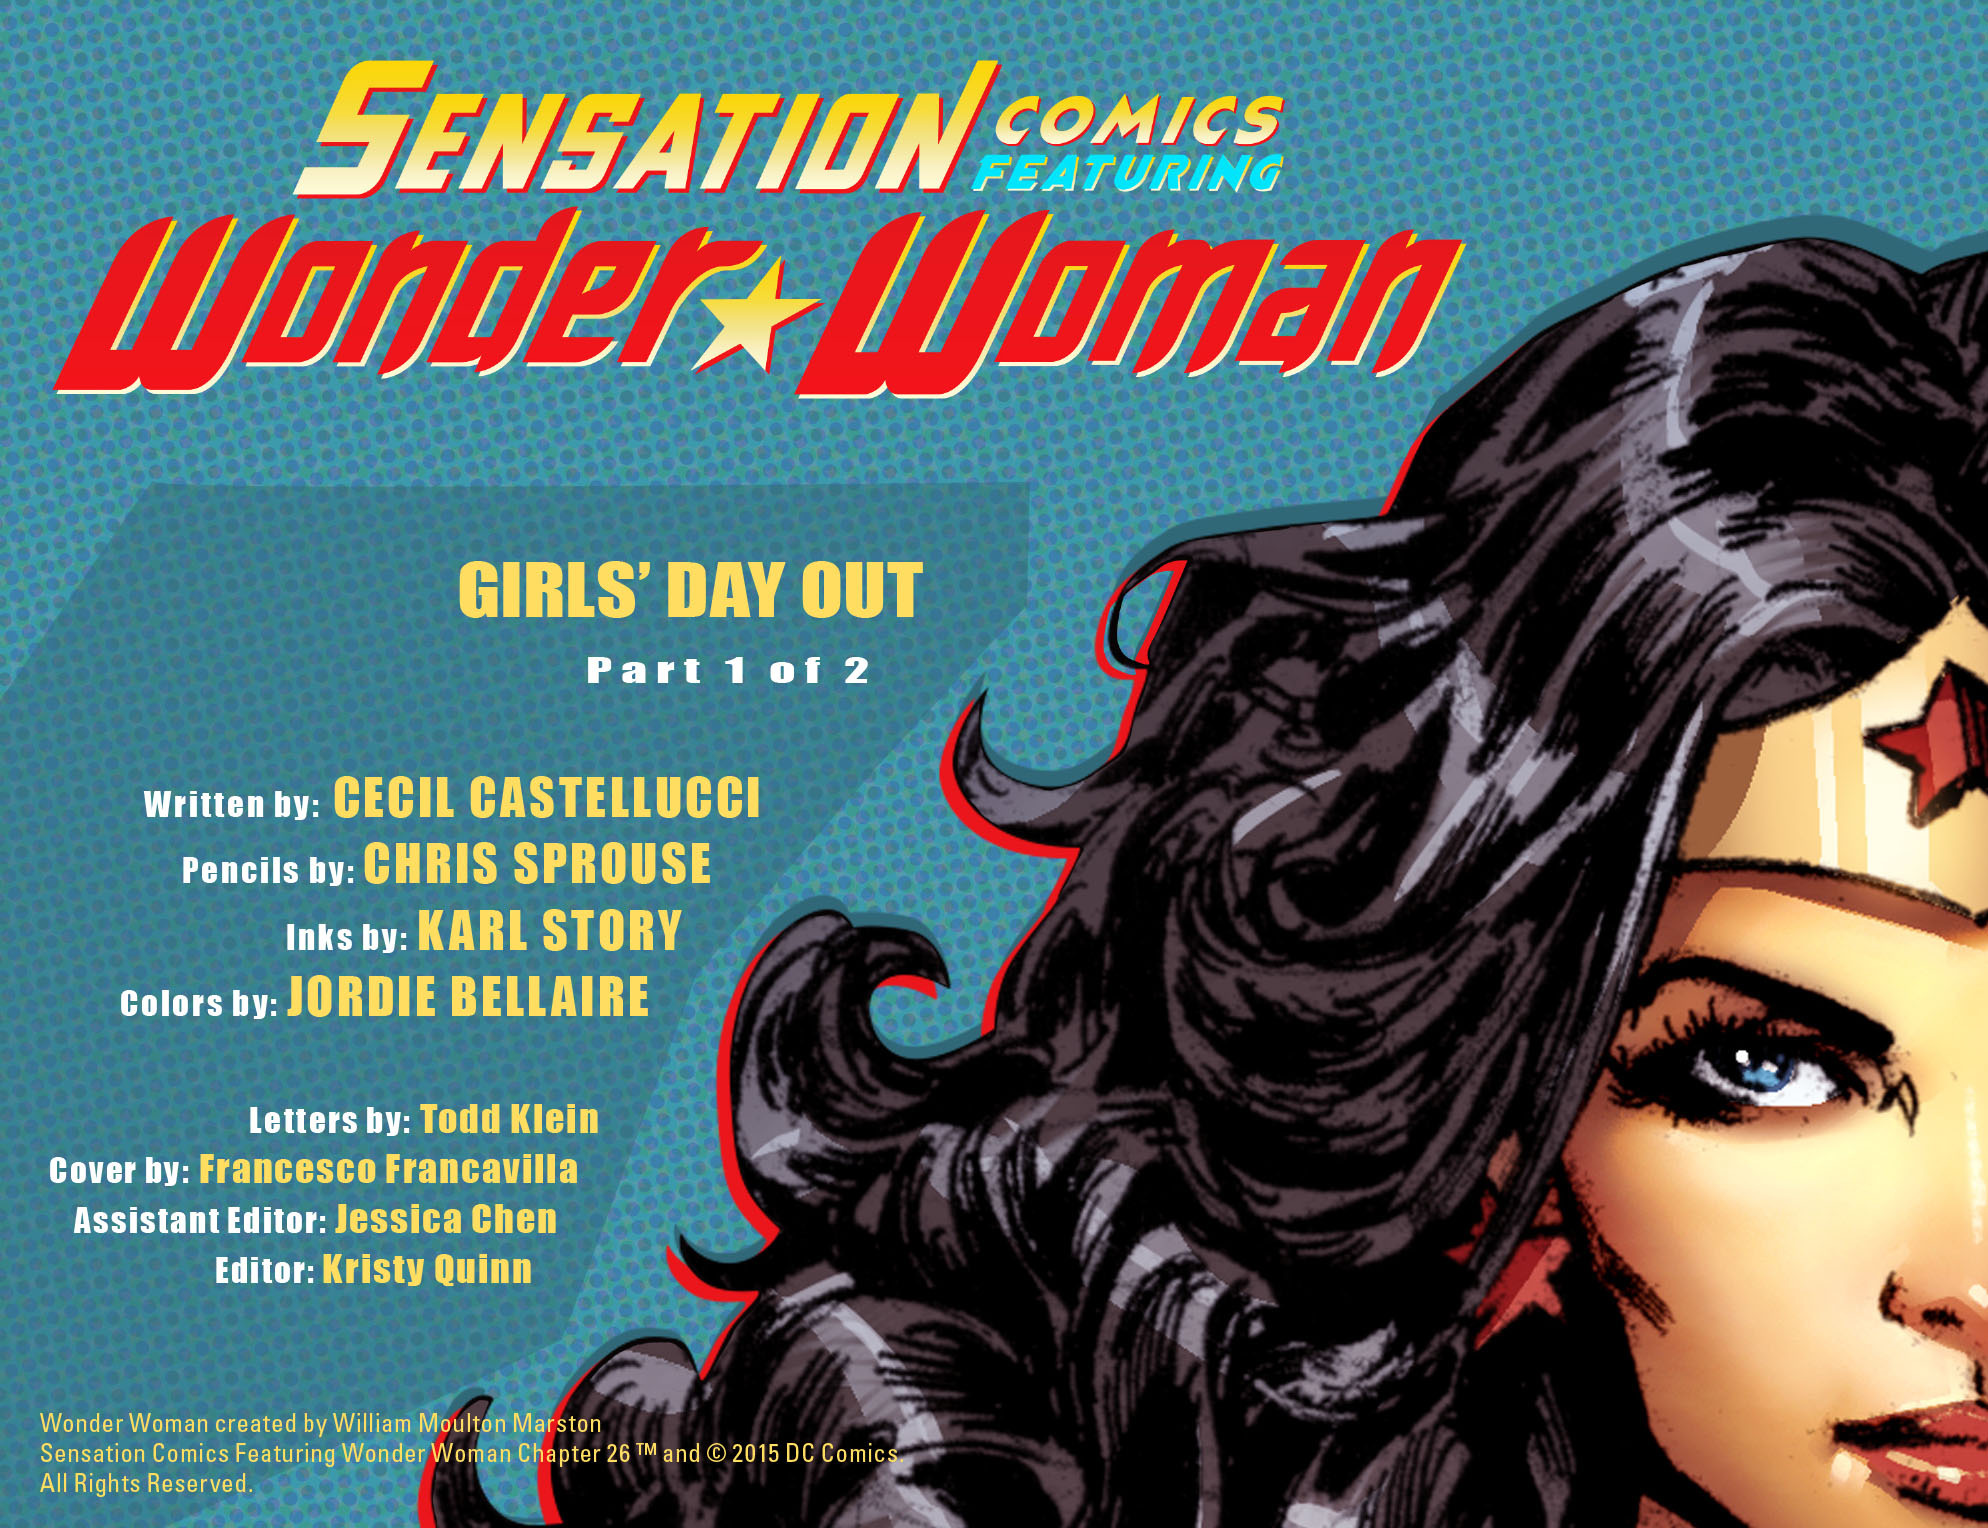 Read online Sensation Comics Featuring Wonder Woman comic -  Issue #26 - 2